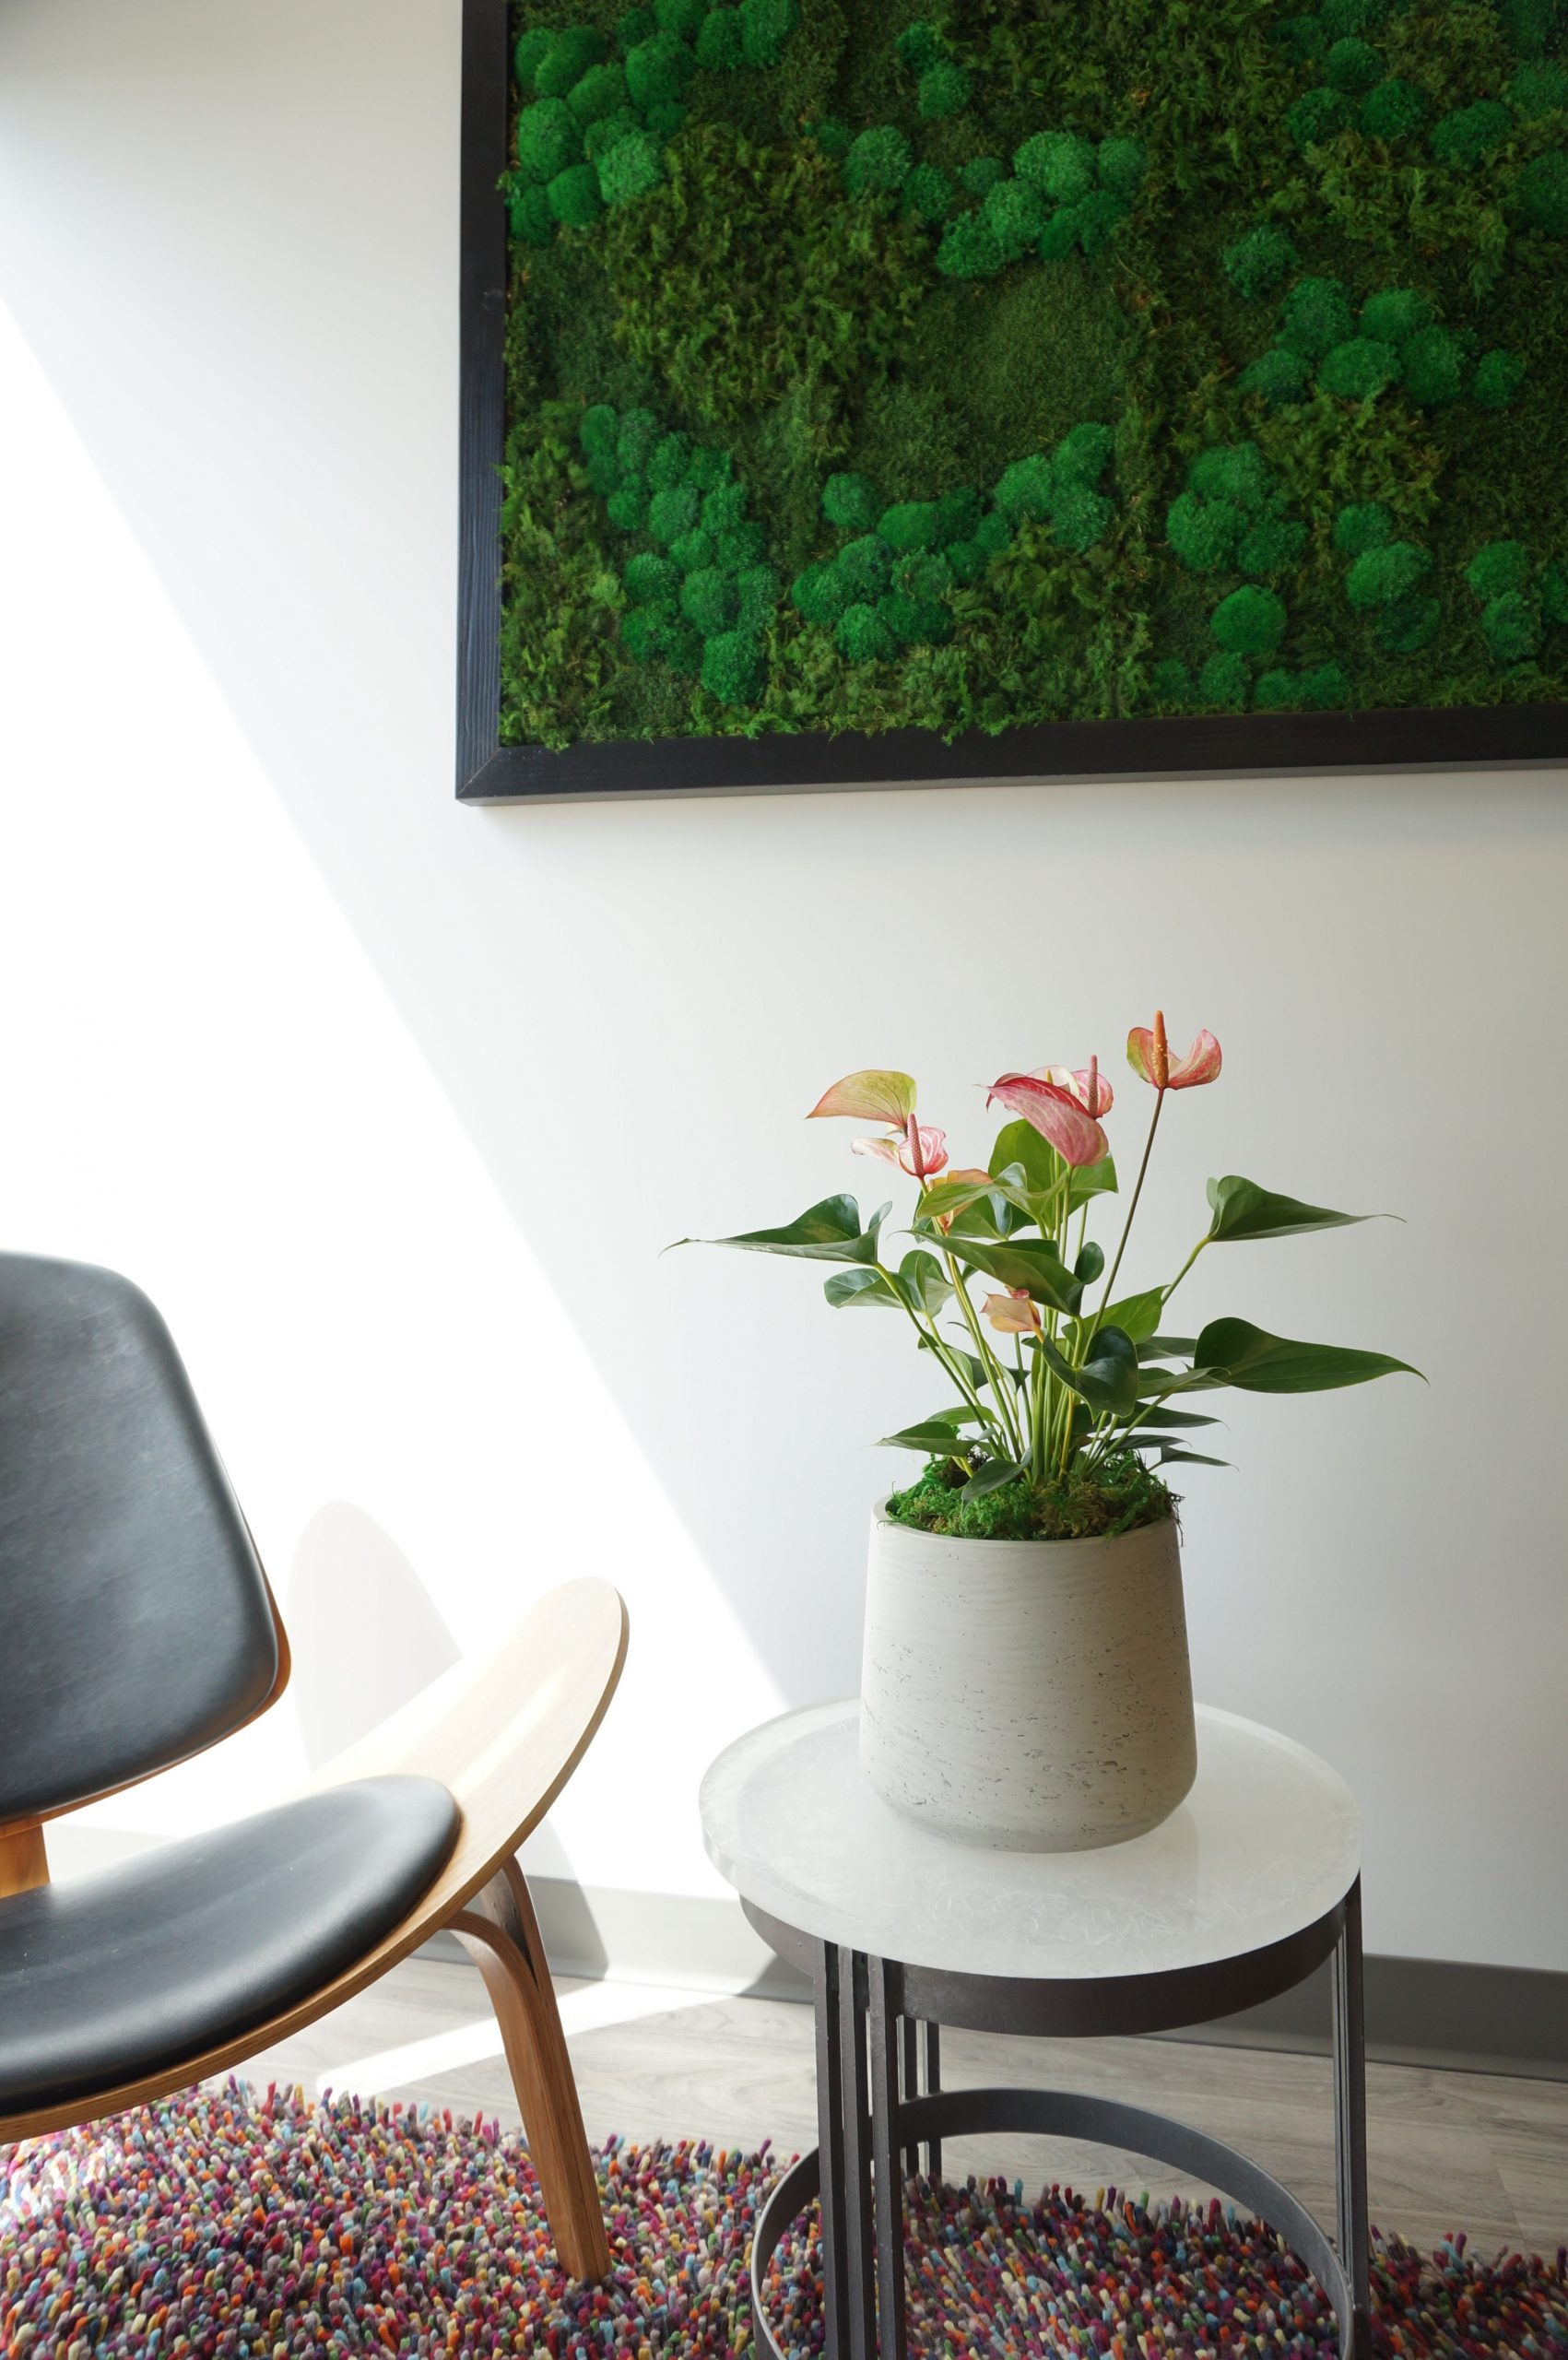 Anthurium in candy stripe red and white with natural light, clay planter and a moss wall.